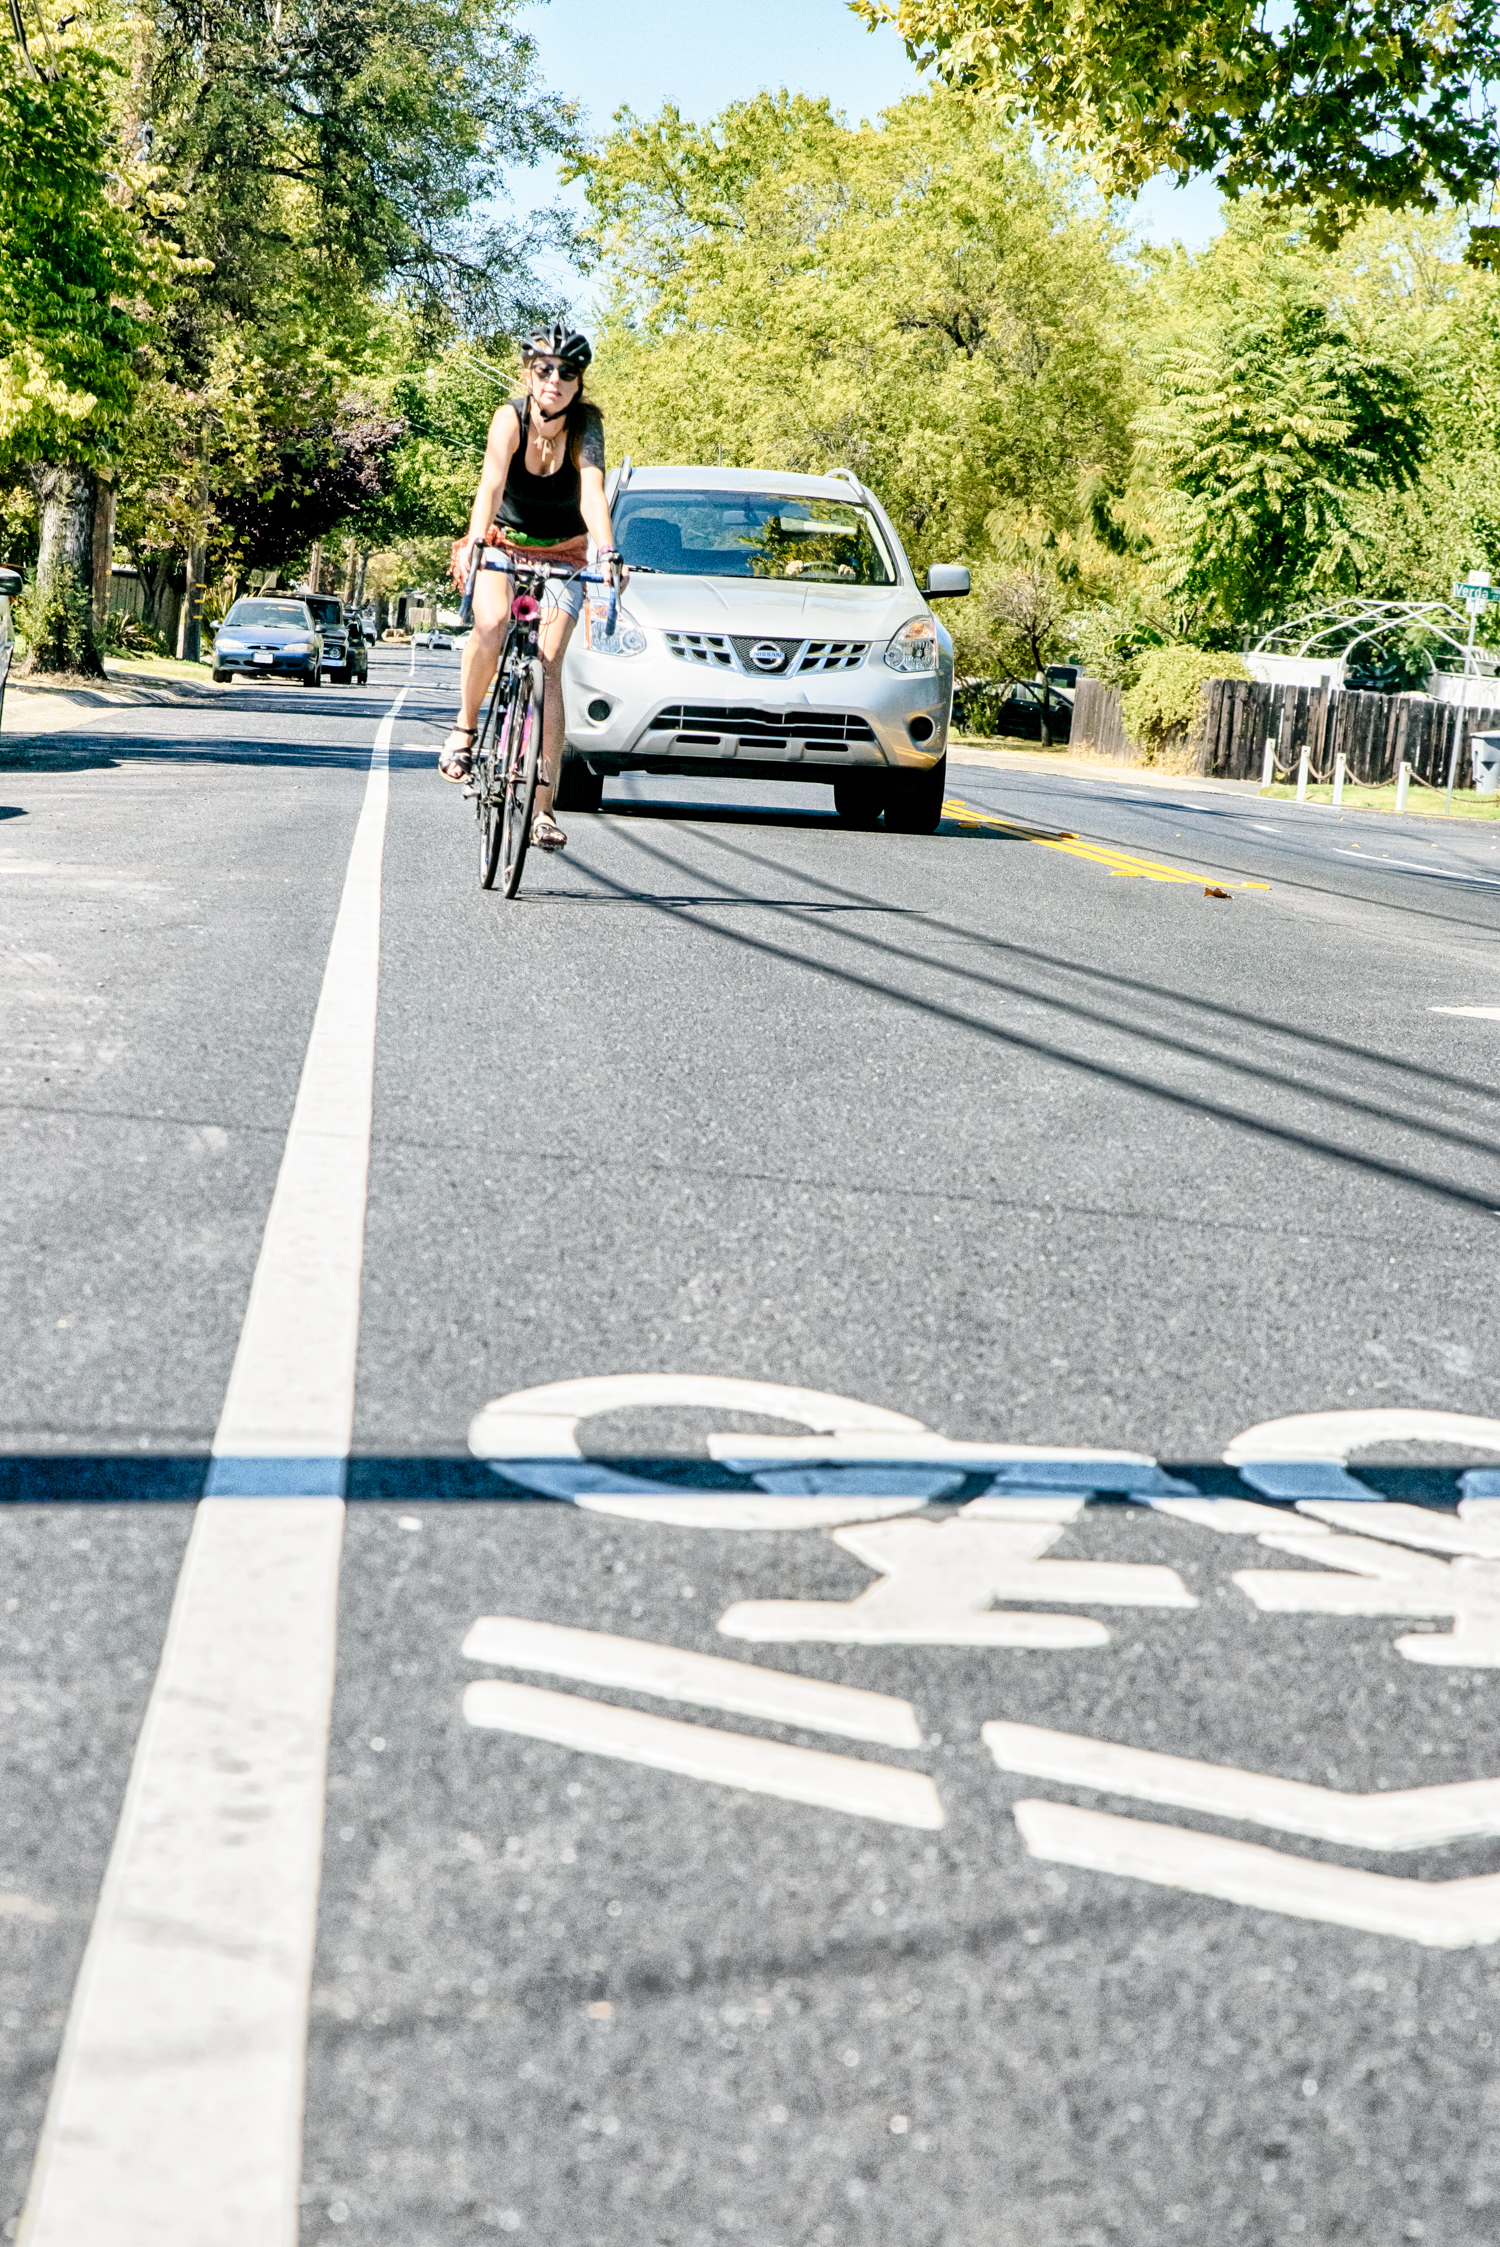 ©Carson Blume   An inexperienced or cautious cyclist may ride on the edge lane, a potentially dangerous place to ride.